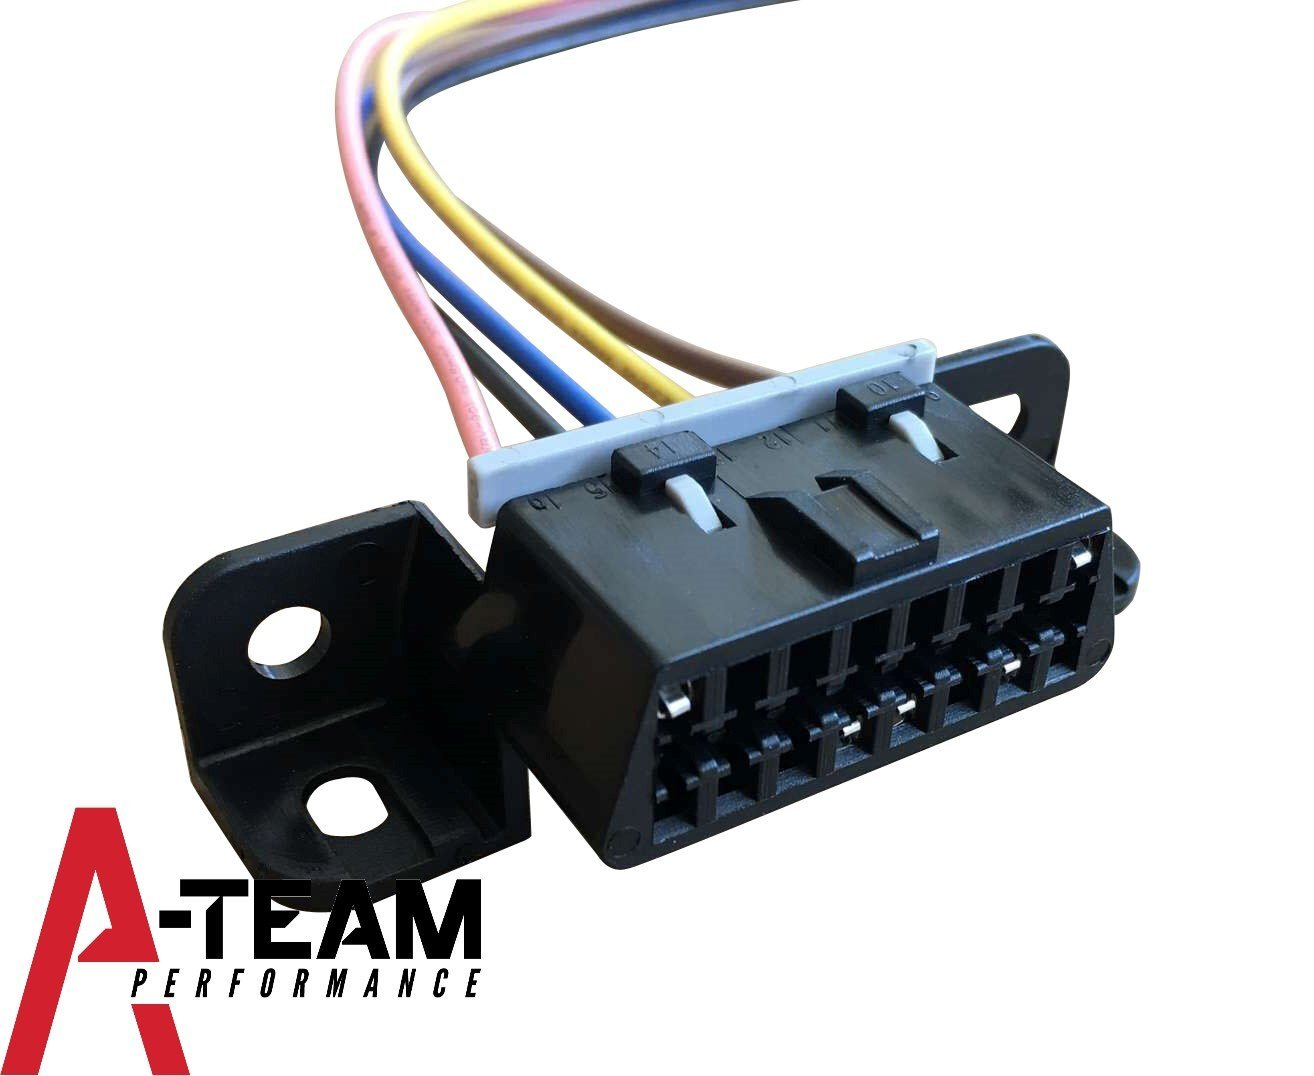 61atxj3rjil  Wire Harness on american auto, cable strap, frsky r-xsr, 13an683g163,